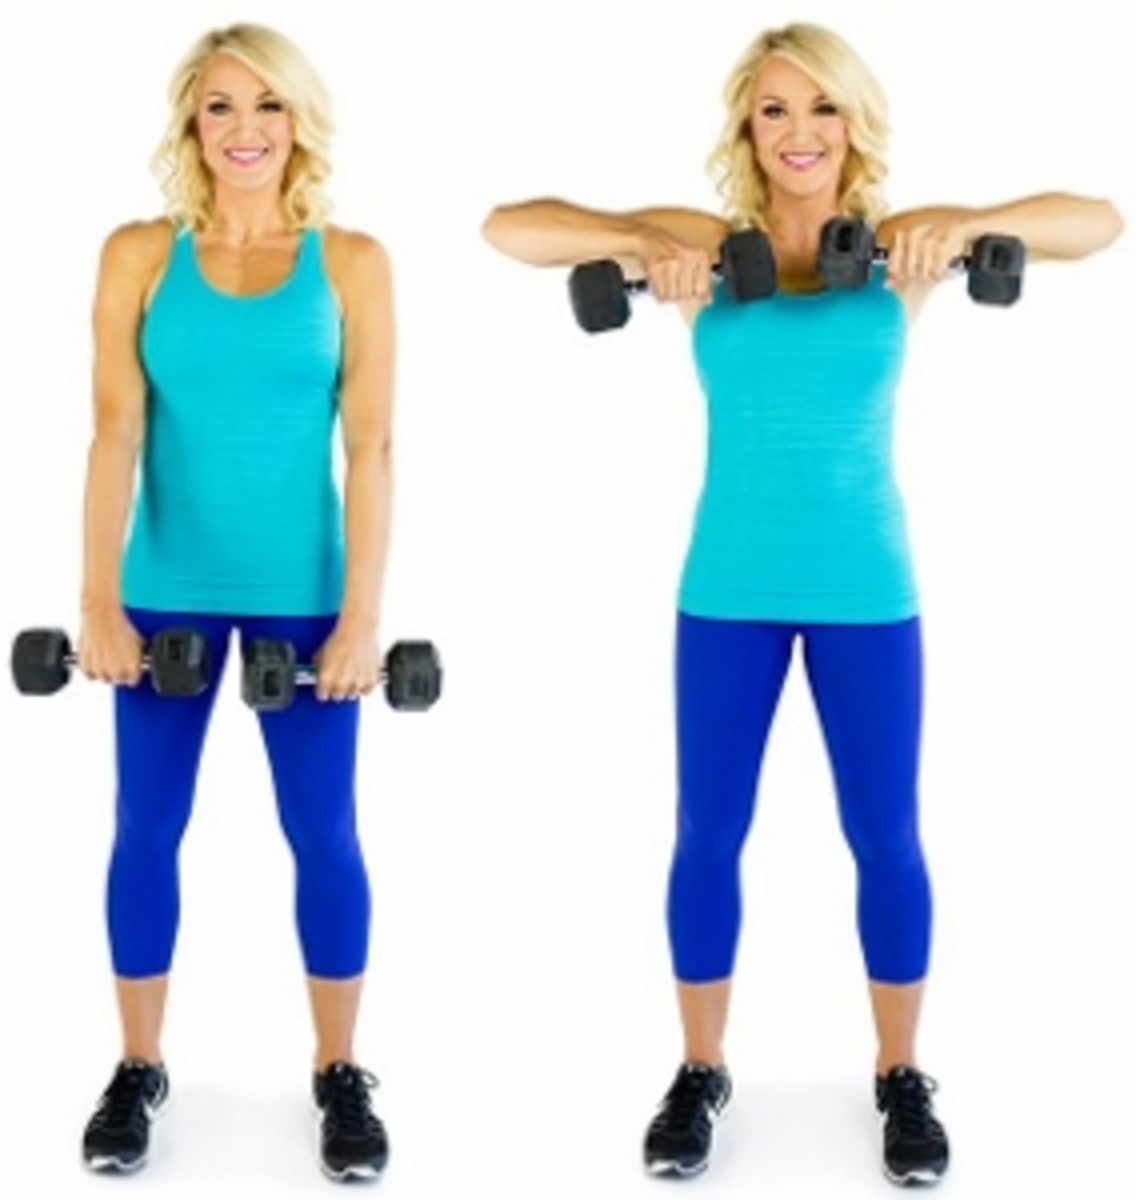 Upright Row: A general strength movement which develops the trapezius and deltoids.